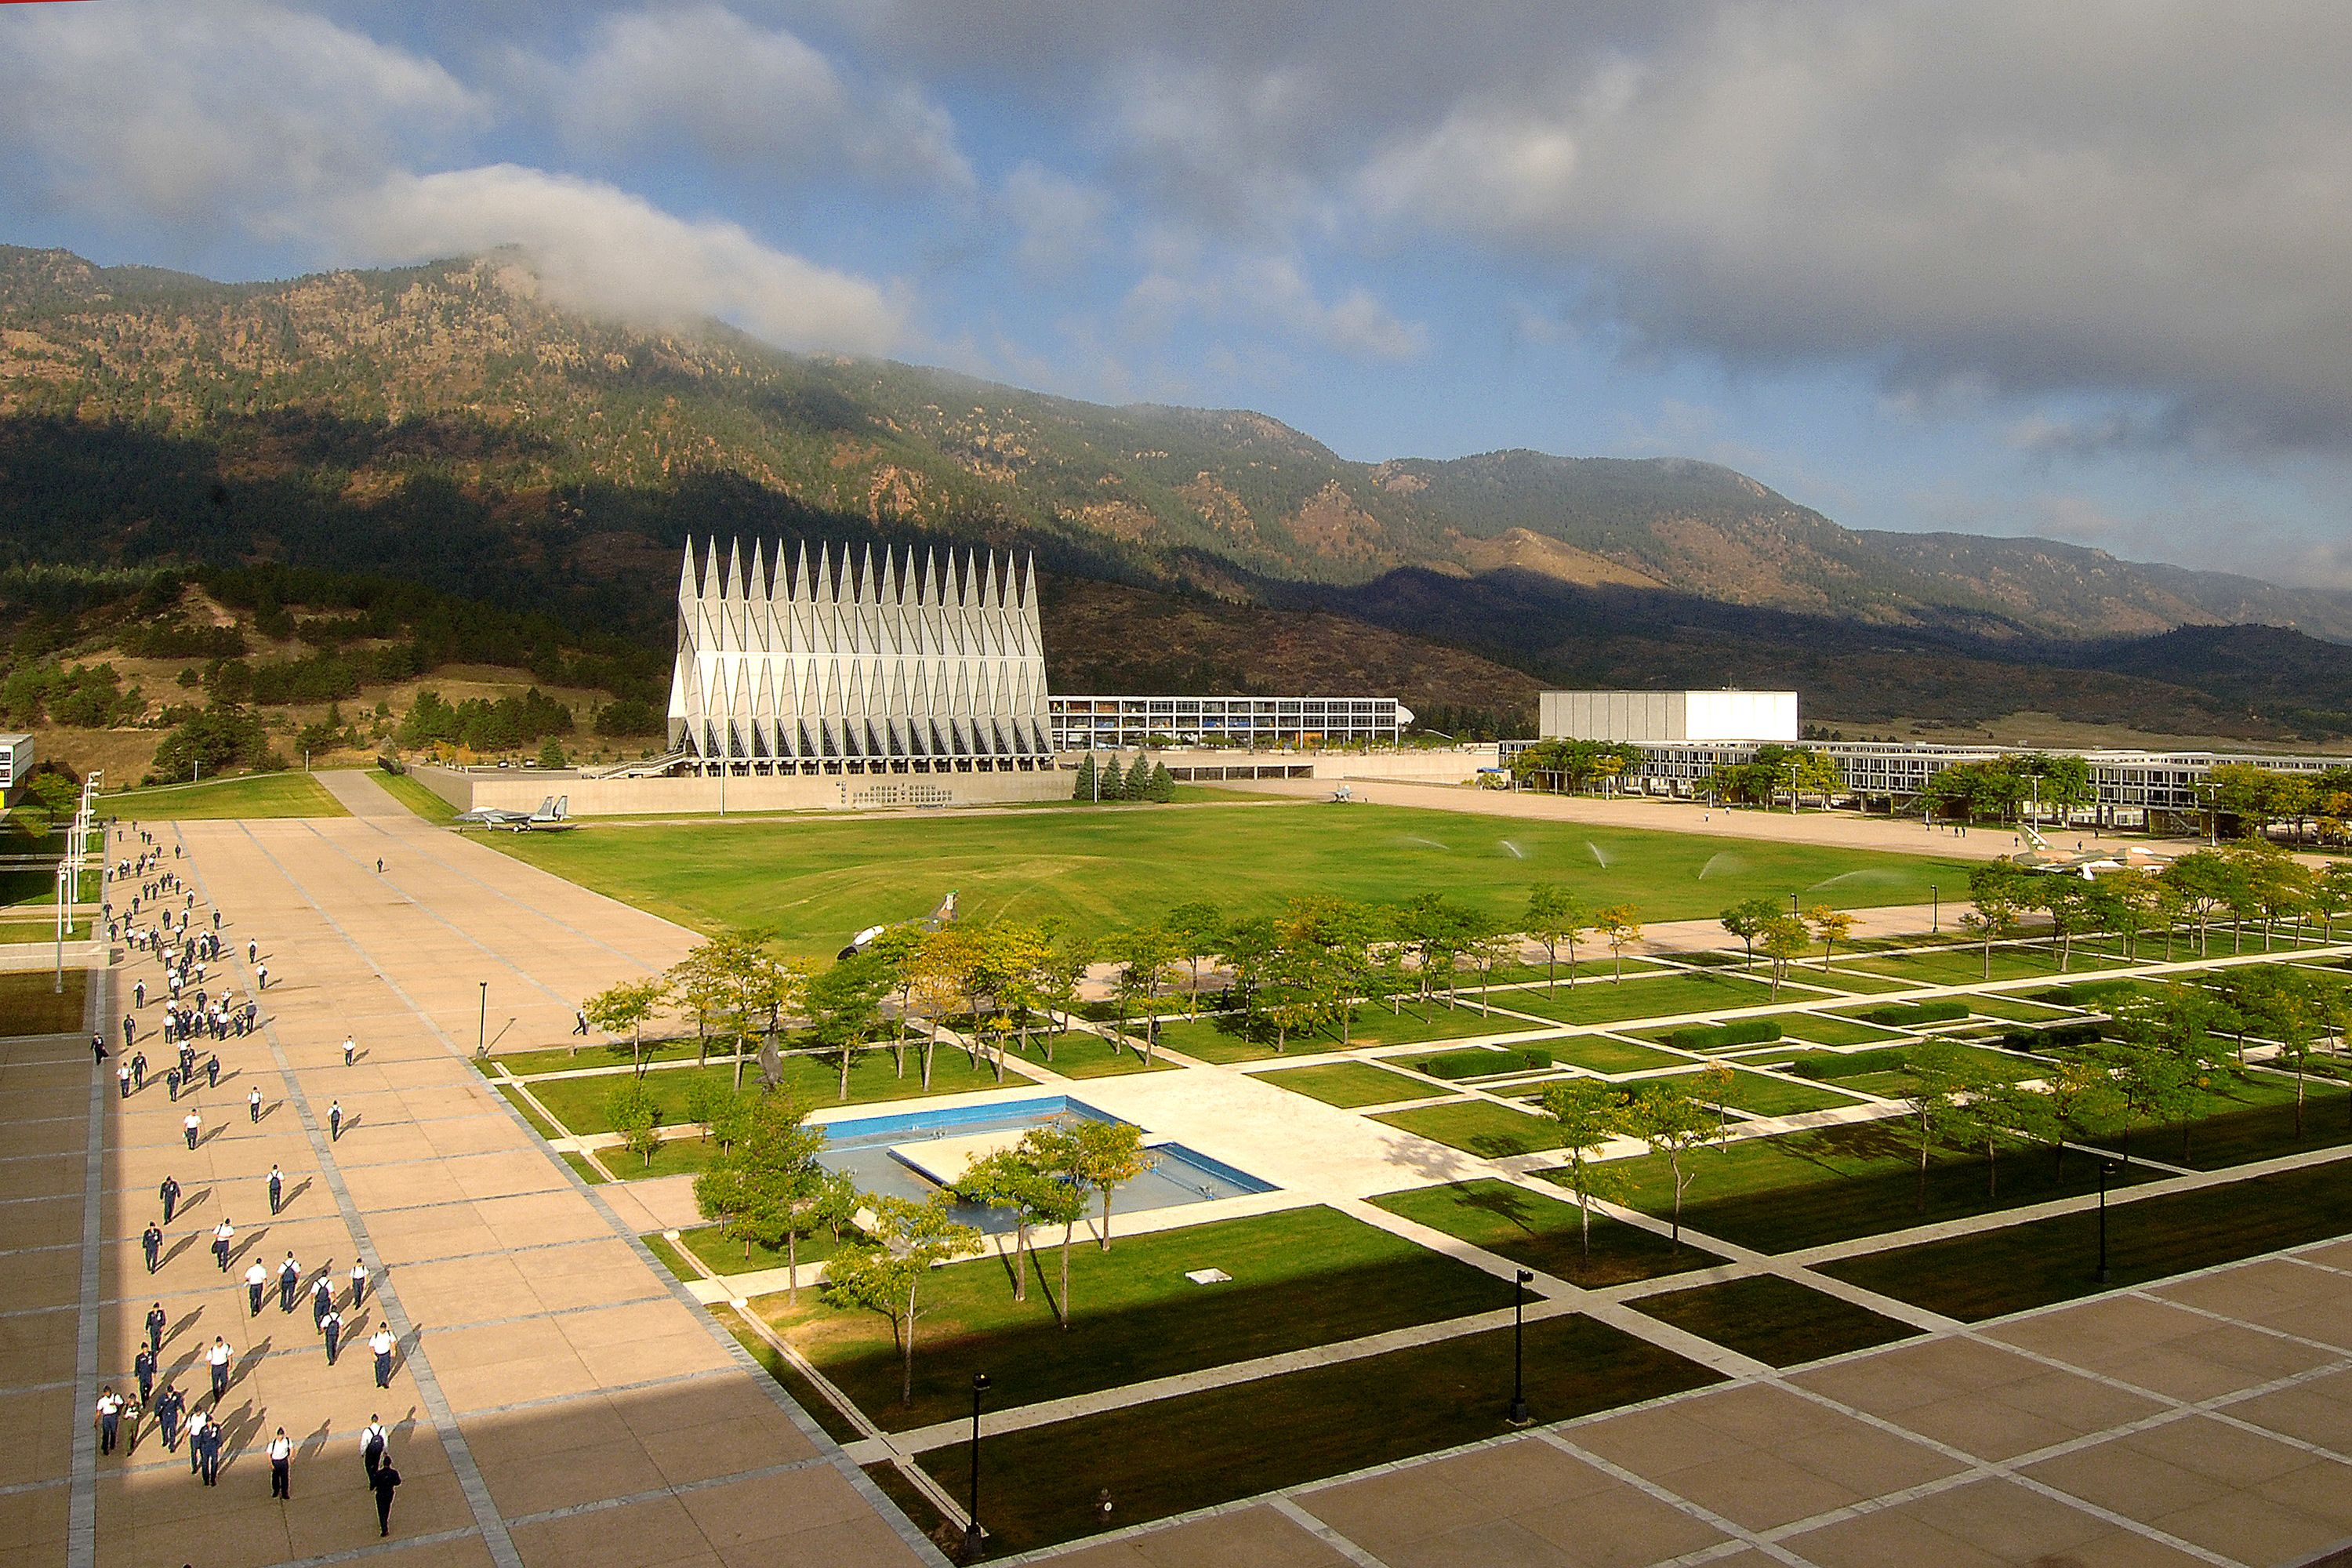 <p>The United States Air Force Academy near Colorado Springs, Colo.</p>